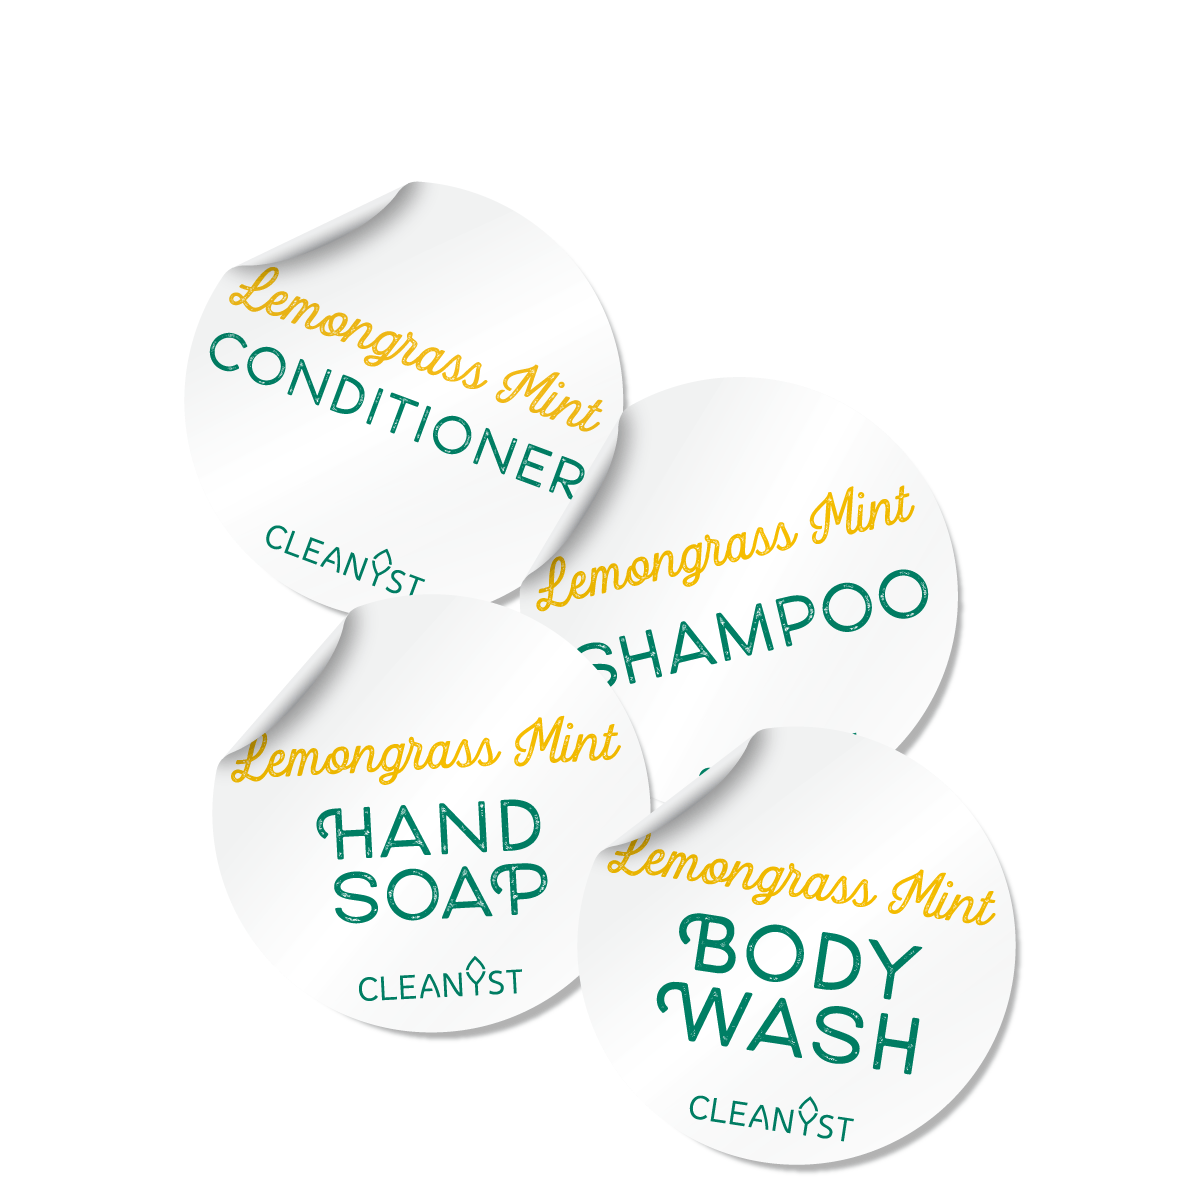 SCENTED BODY CARE LABELS